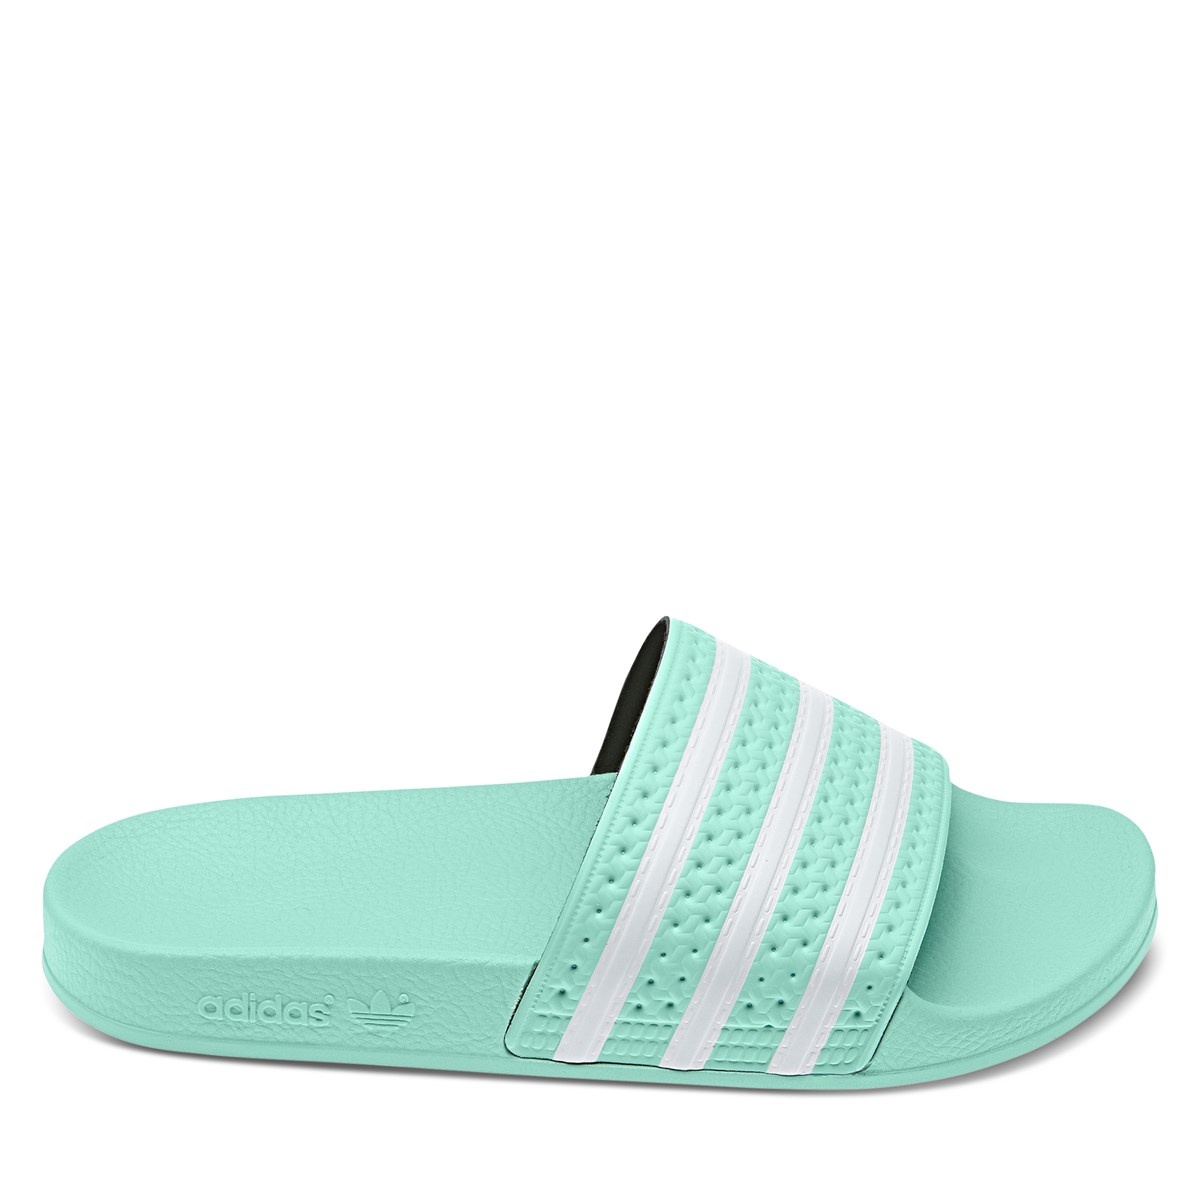 Women's Adilette Slides in Mint